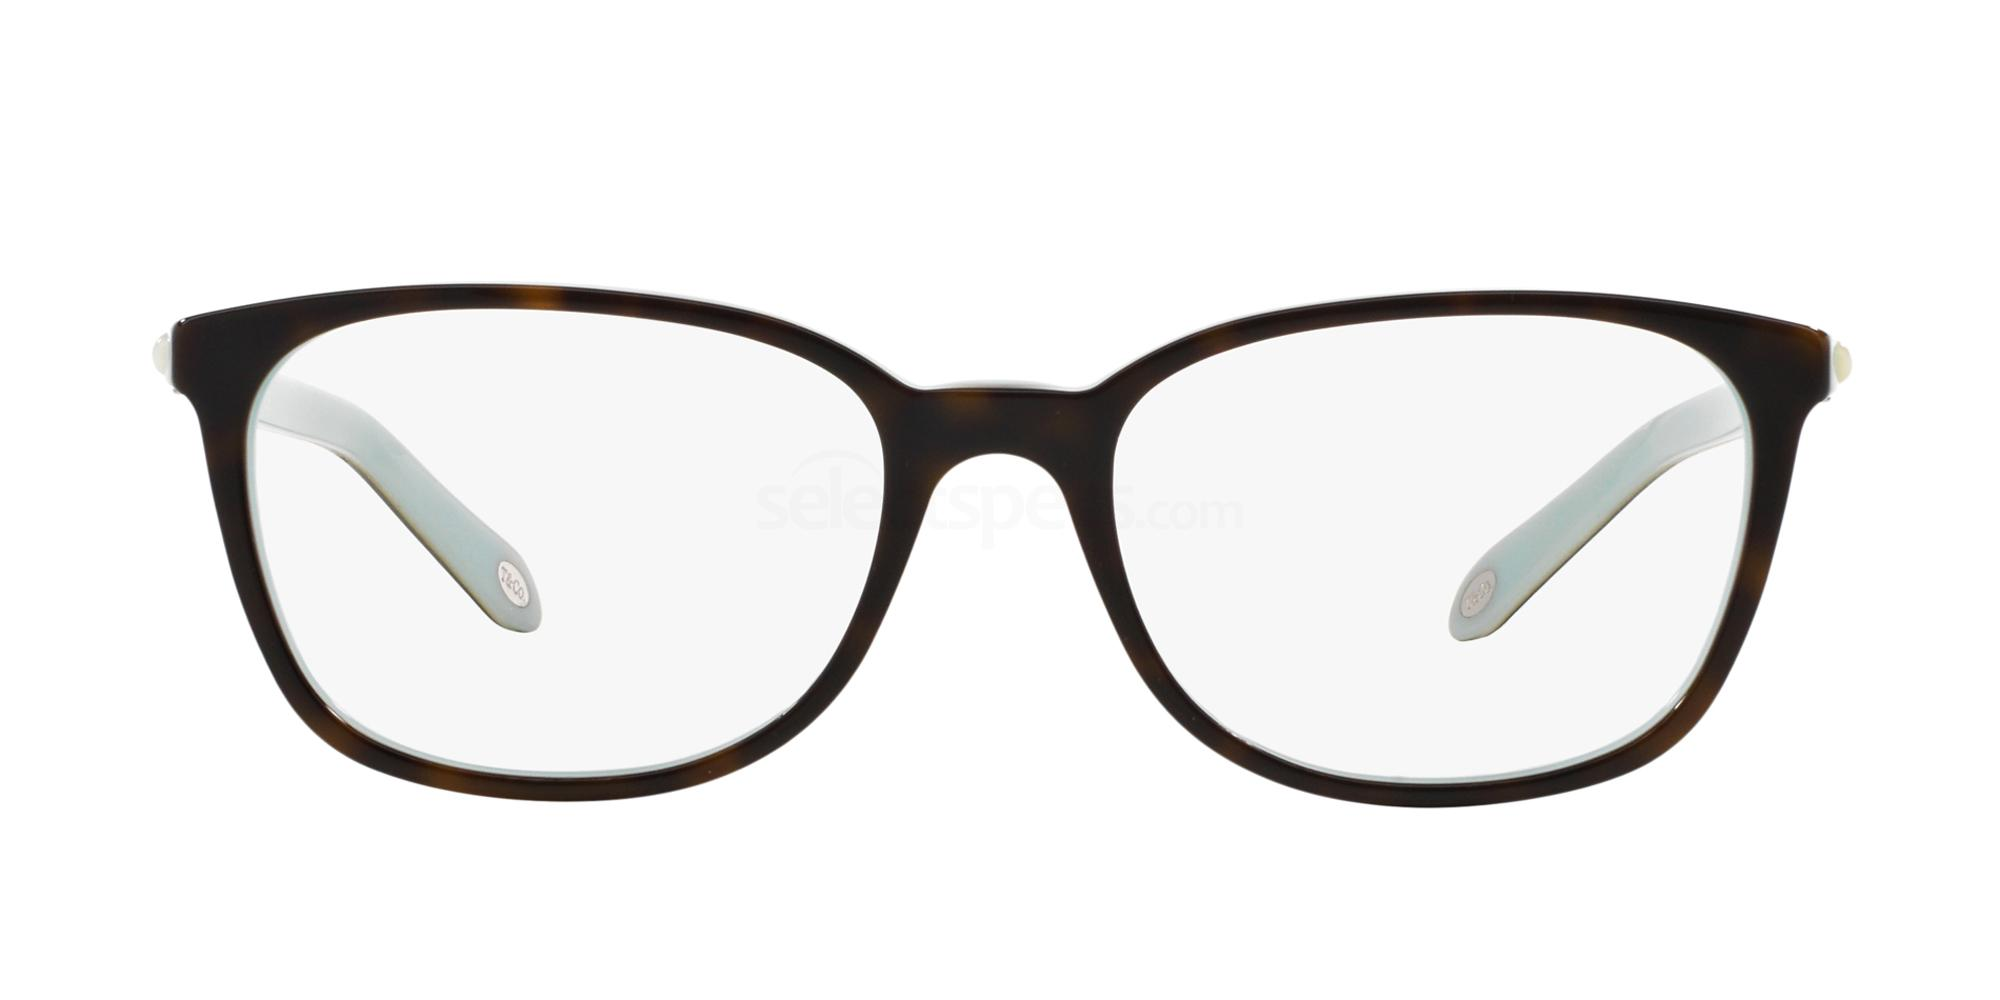 Tiffany & Co. TF2109HB glasses. Free lenses & delivery | SelectSpecs ...